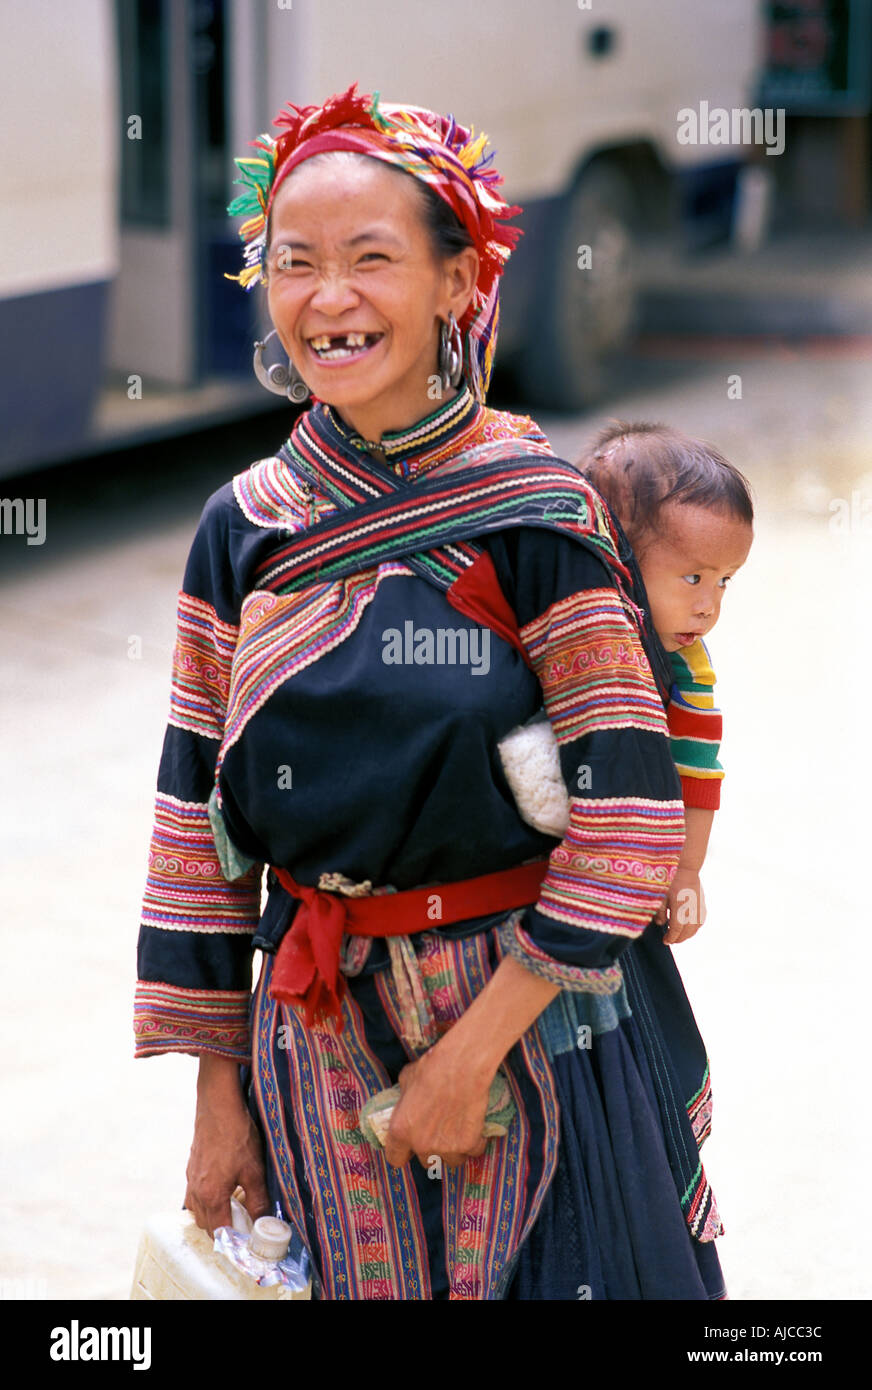 Woman with child from the Flower Hmnog hilltribe in distinctive tribal costume Sapa Vietnam - Stock Image